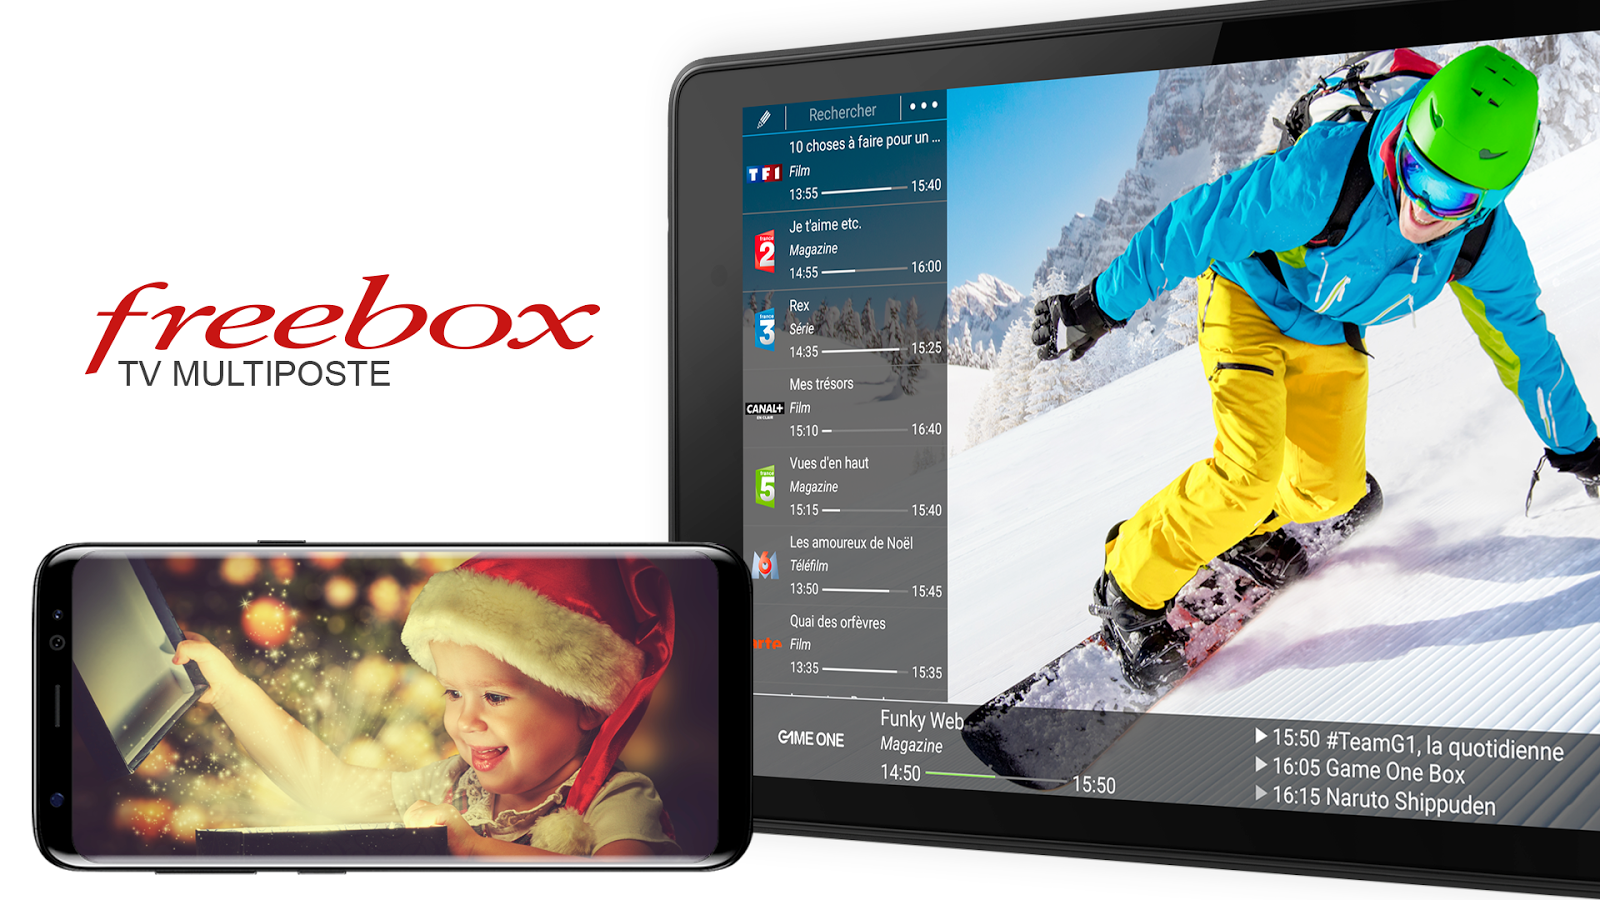 Box'n TV - Freebox Multiposte – Capture d'écran